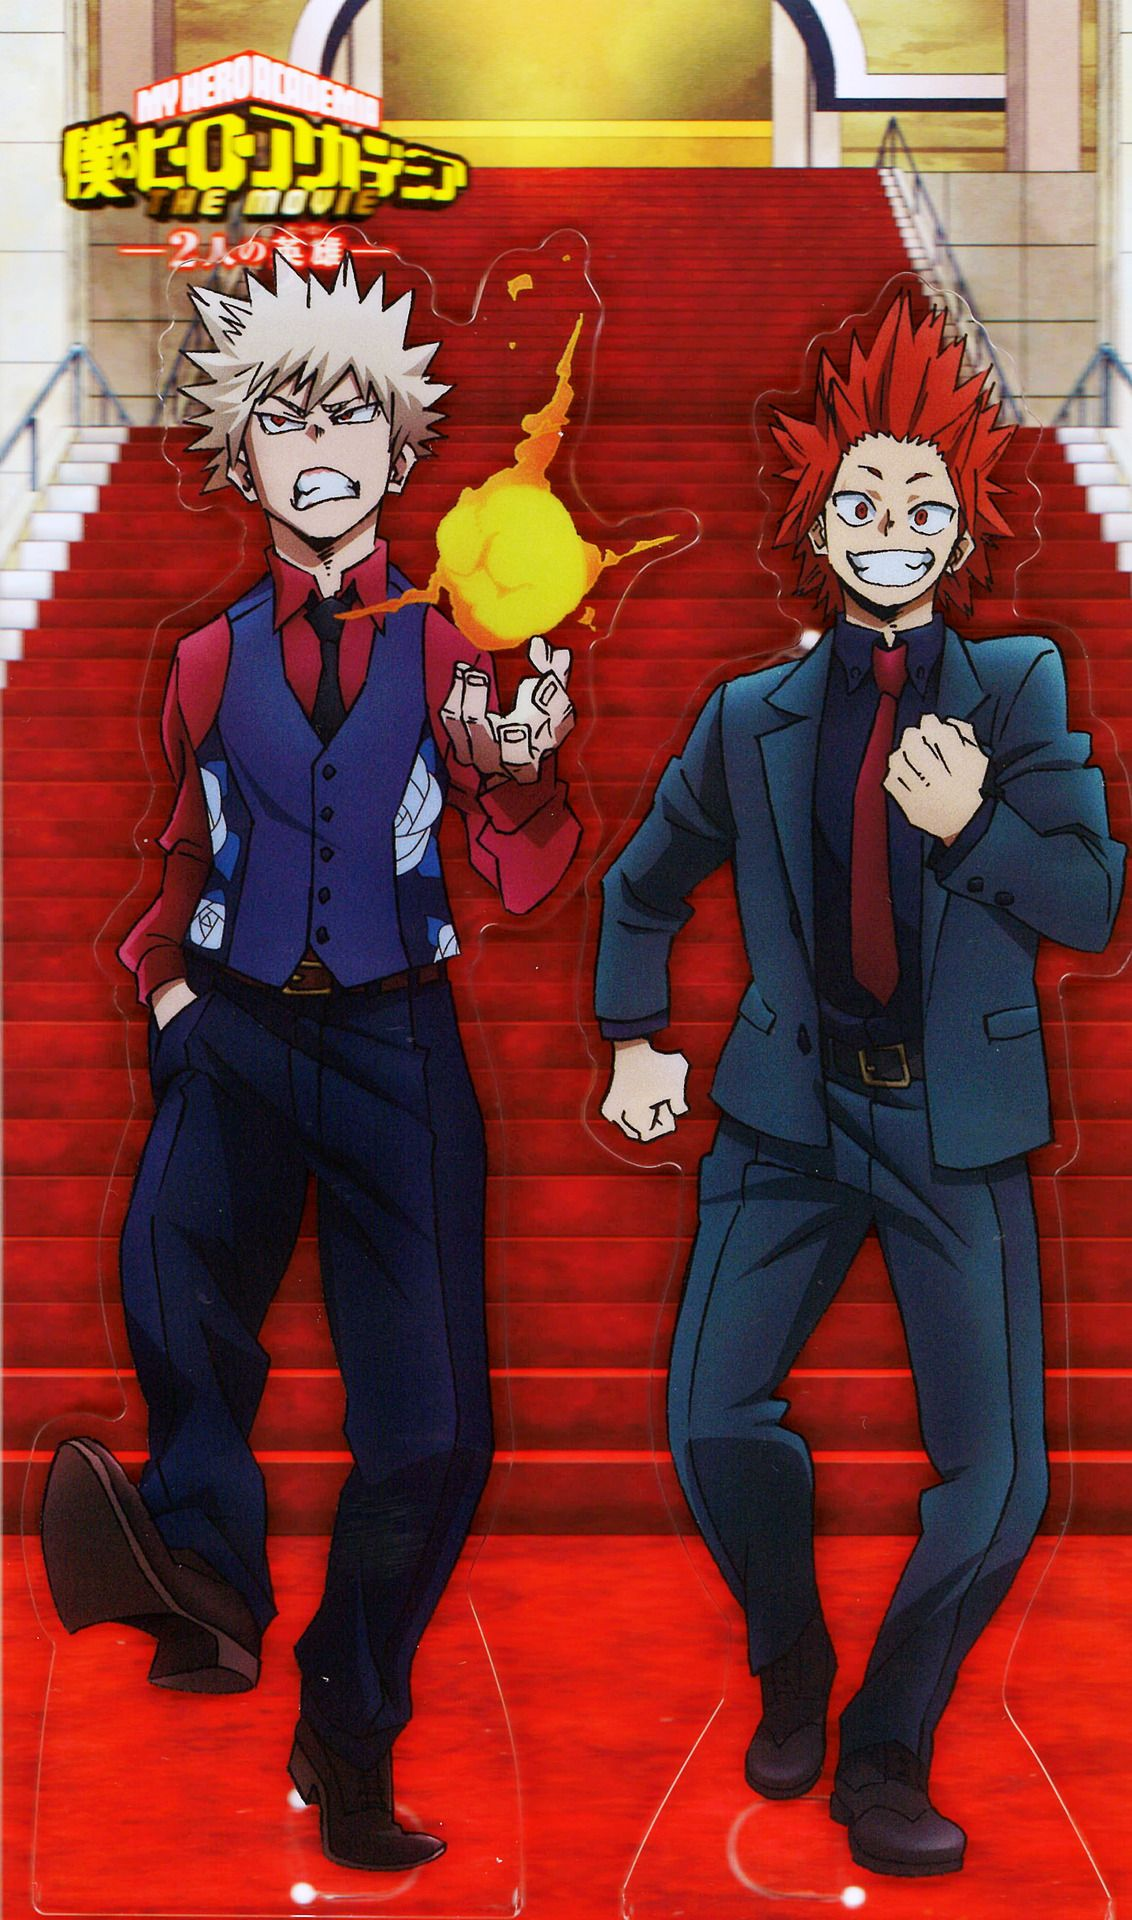 The Boku No Hero Academia Two Heroes Movie Acrylic Stands Come With A Fancy Red Carpet Backdrop And You Can Put Up Hero Movie Boku No Hero Academia My Hero